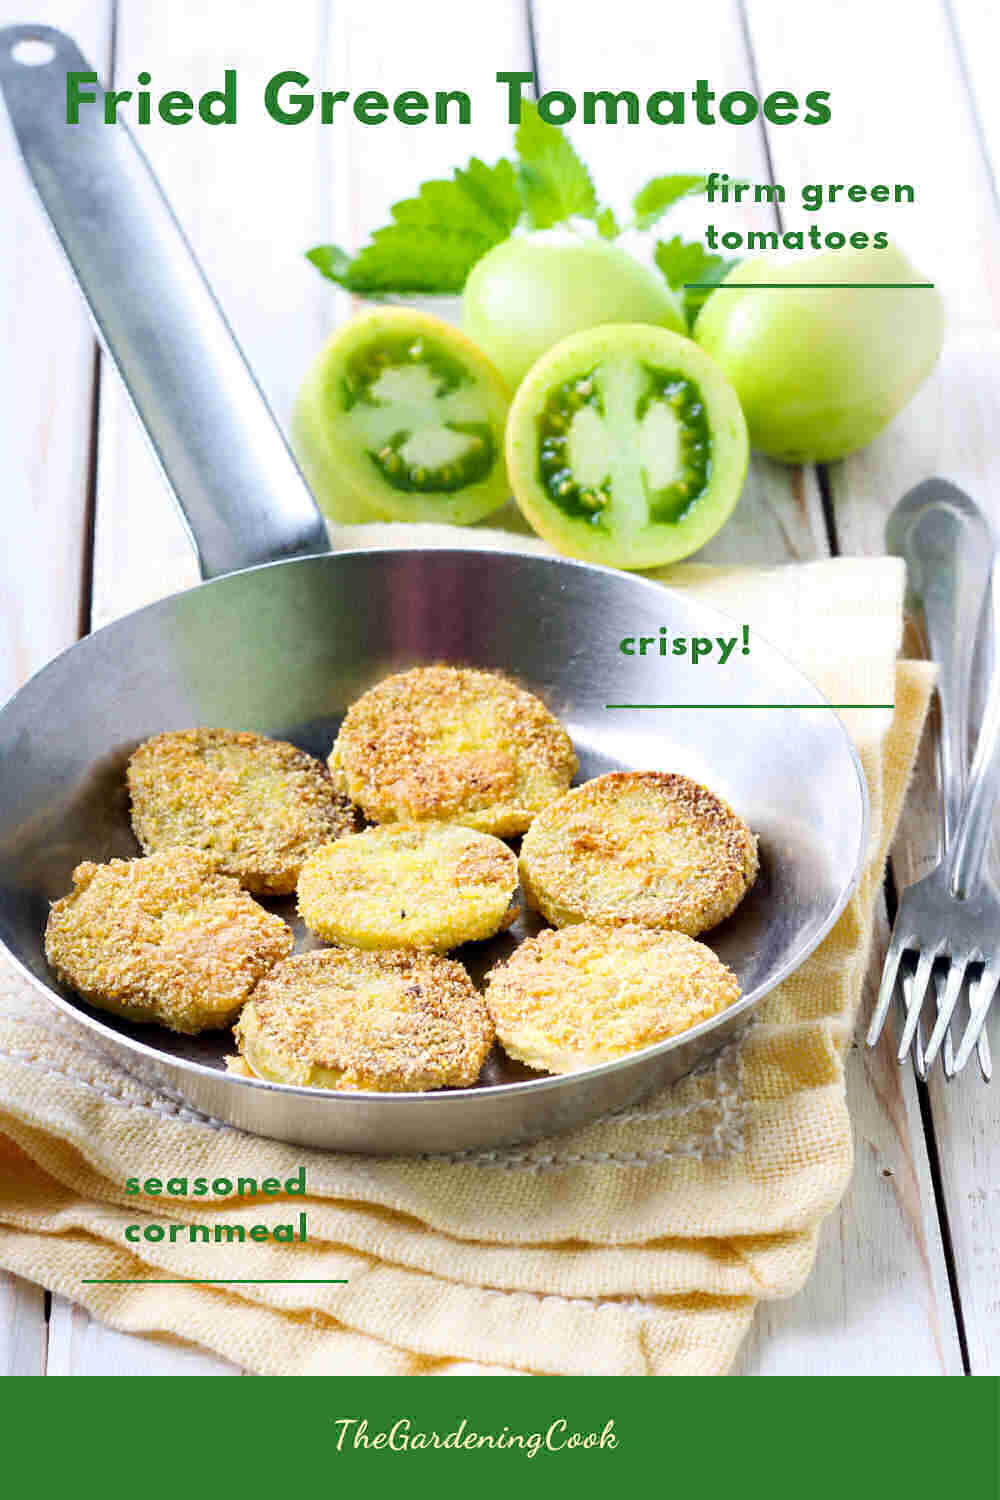 Green tomatoes and tomato slices in a frying pan with words Fried Green Tomatoes.